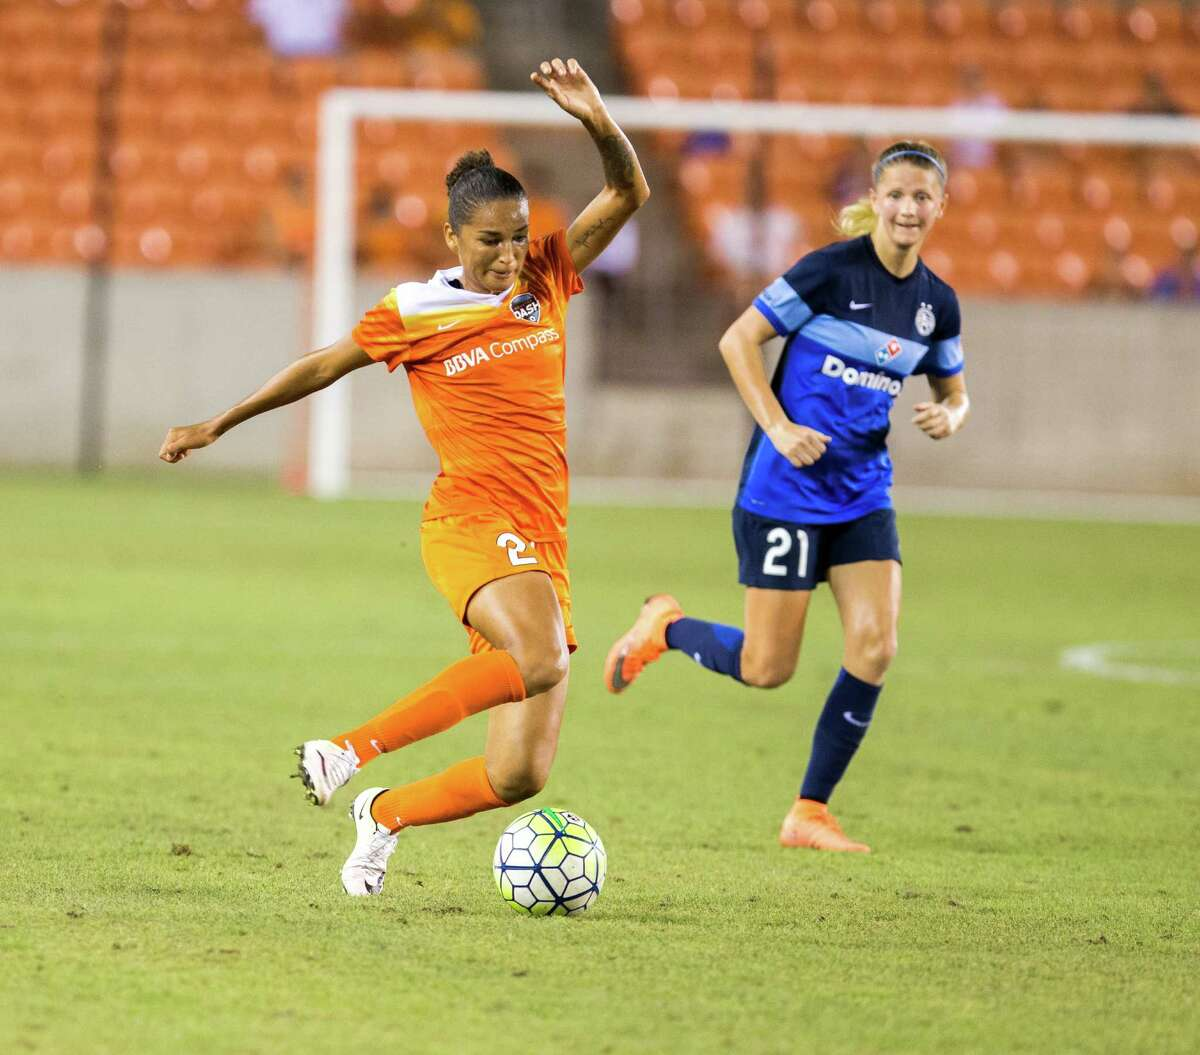 Houston Dash defender Poliana Barbosa (2) pushes the ball down the field against the FC Kansas City during the second half of action between the Houston Dash and the FC Kansas City during a soccer game at BBVA Compass, Sunday, June 19, 2016, in Houston. FC Kansas City defeated Houston Dash 1-0.